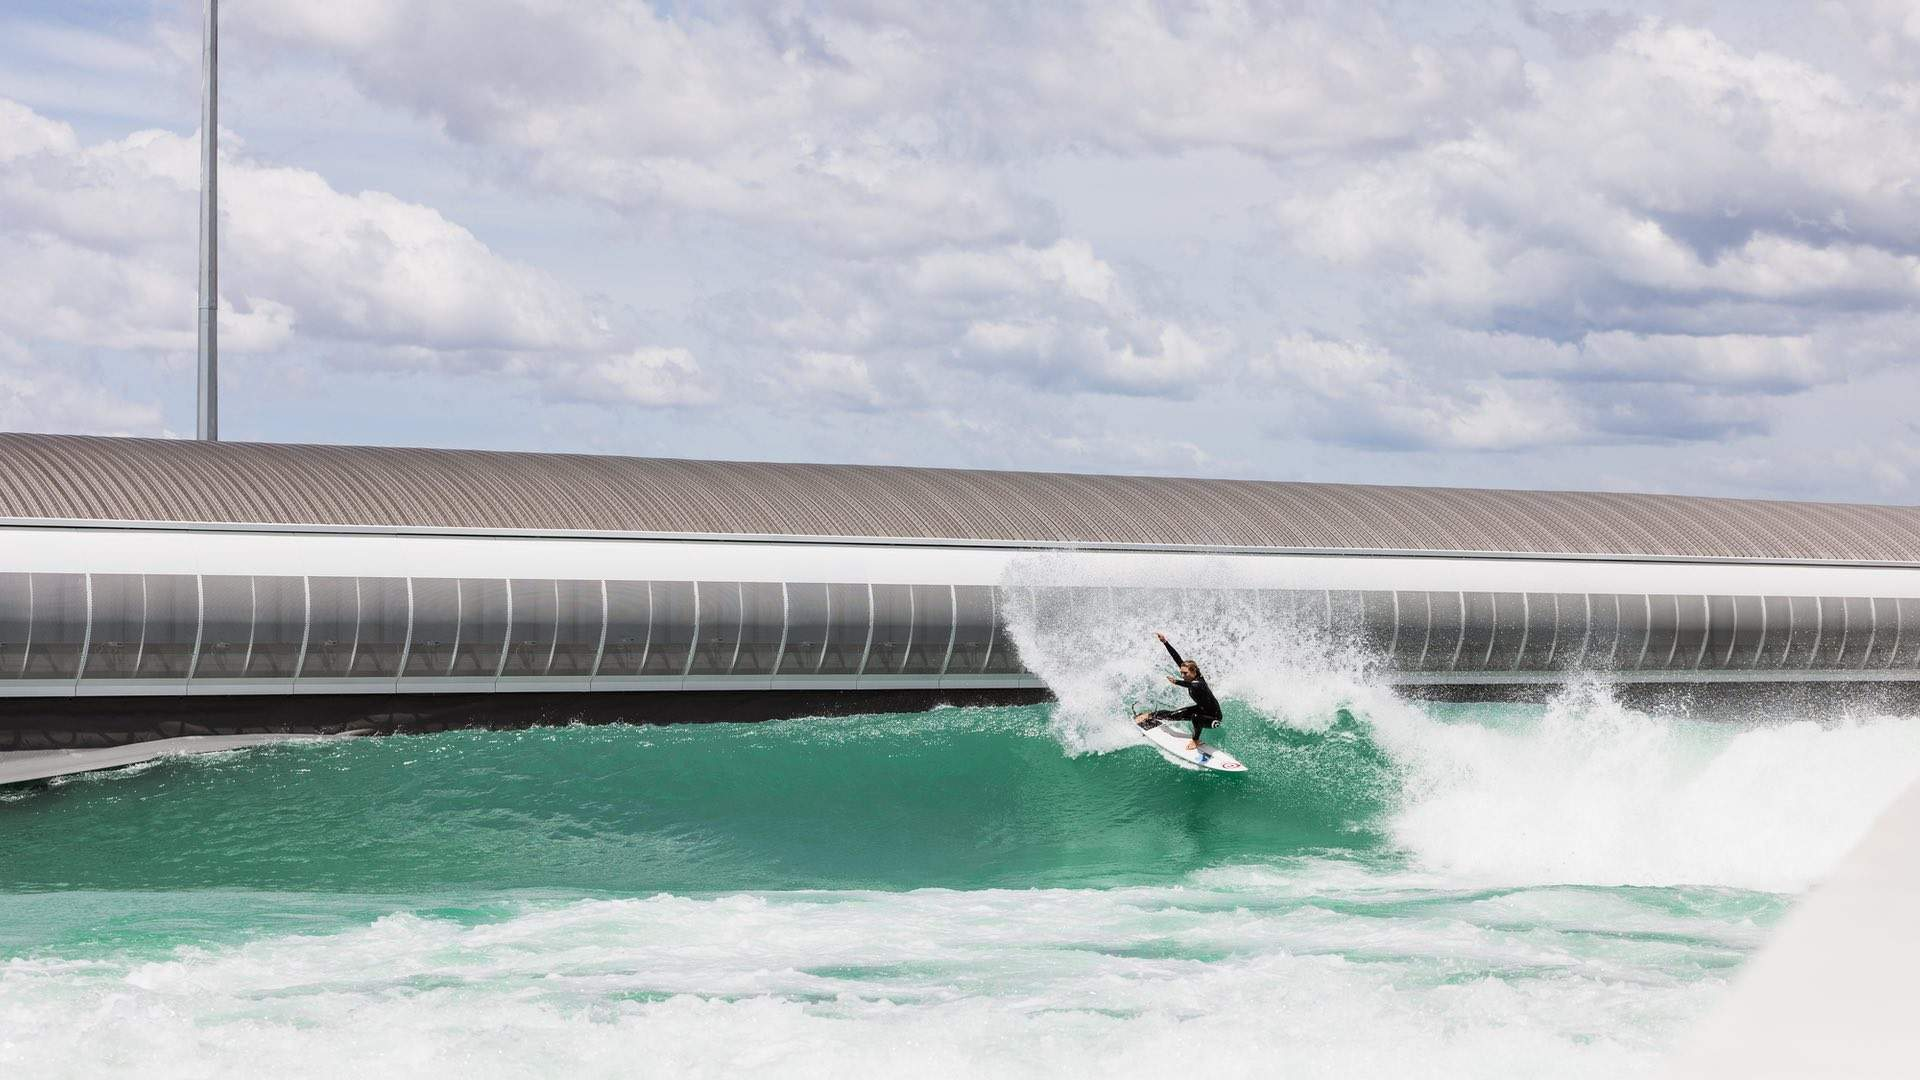 Melbourne's Surf Park Urbnsurf Will Start Pumping Out Waves Once Again This Week